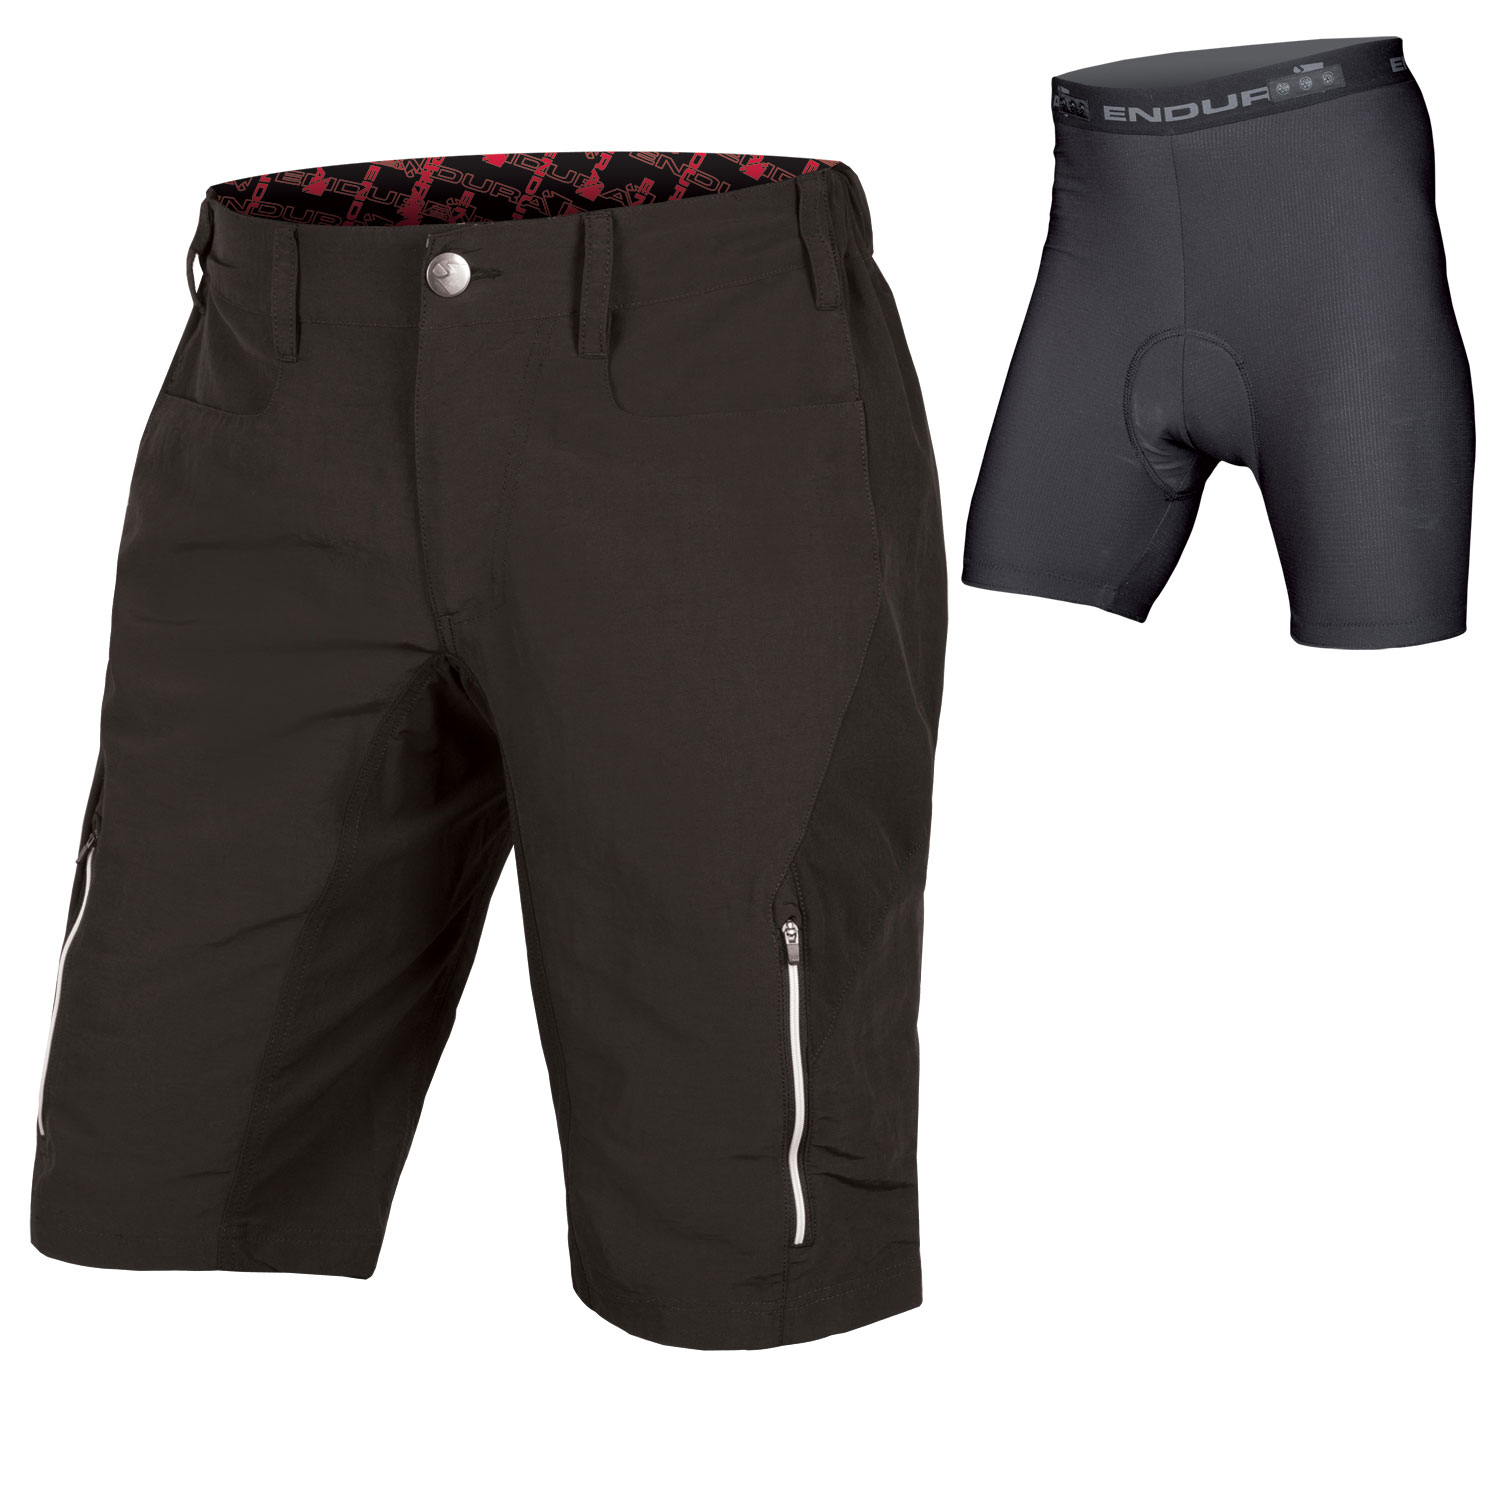 SingleTrack III Short with Liner Black